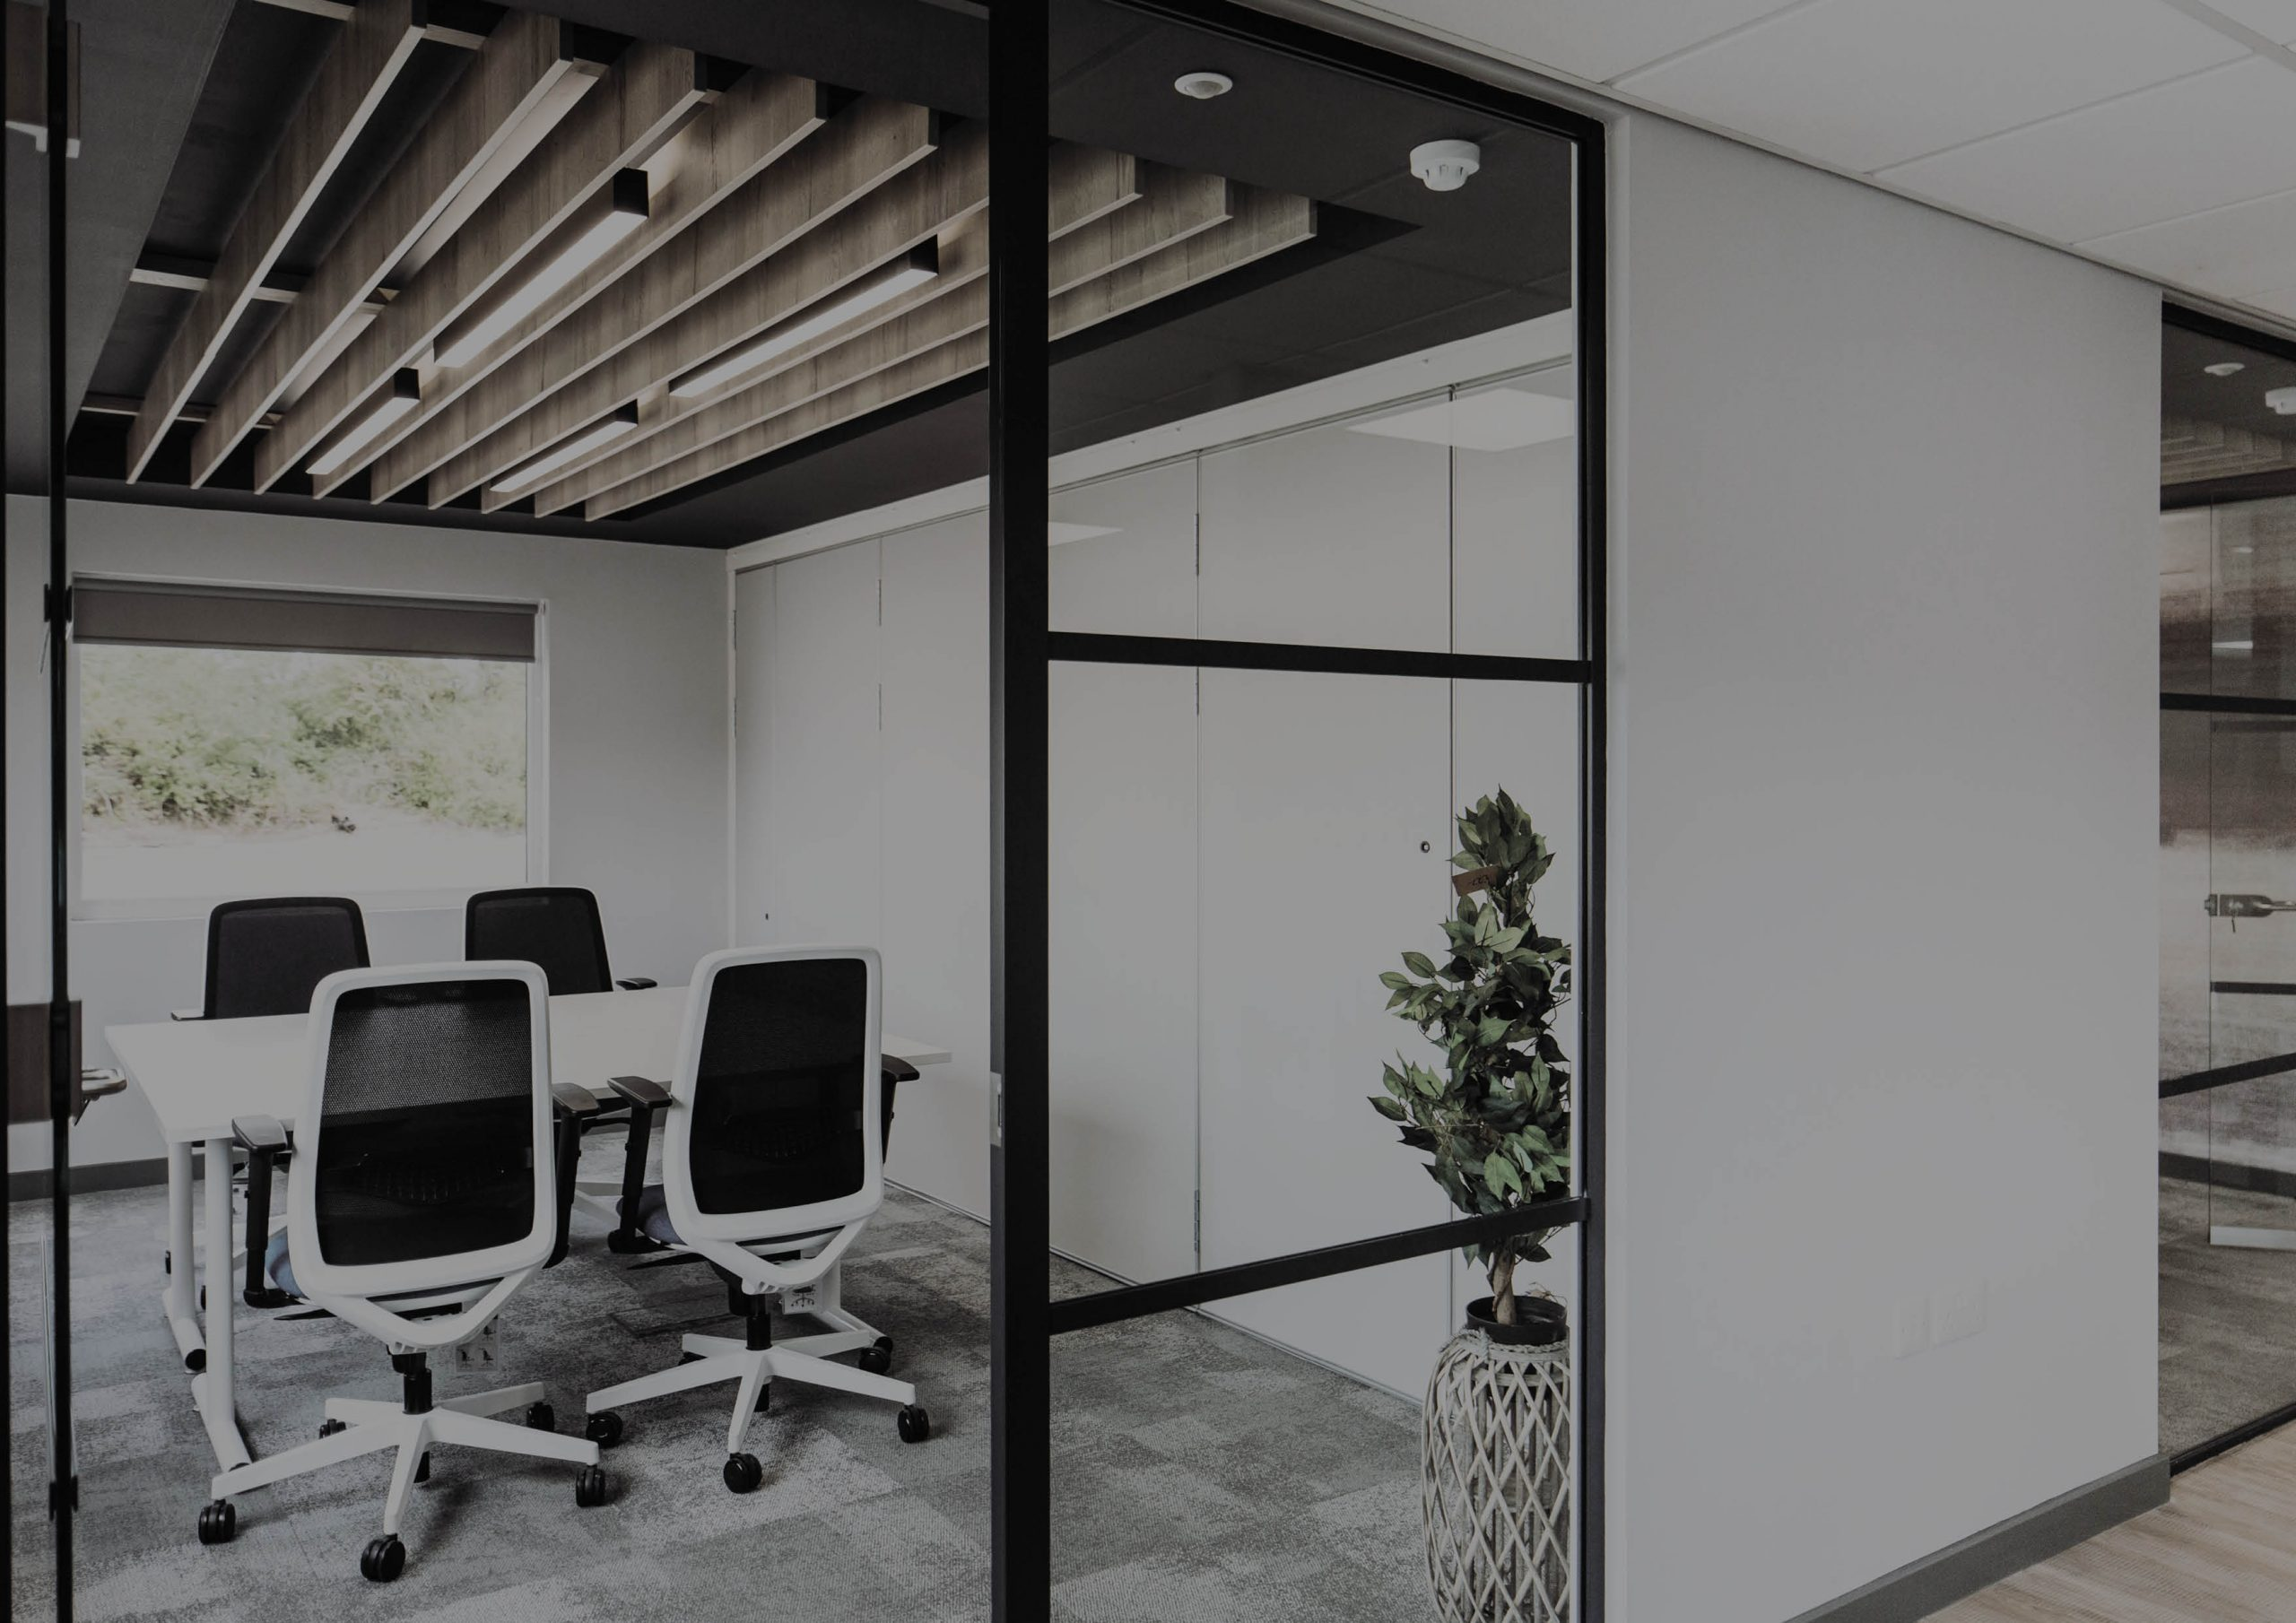 The importance of flexible workspace